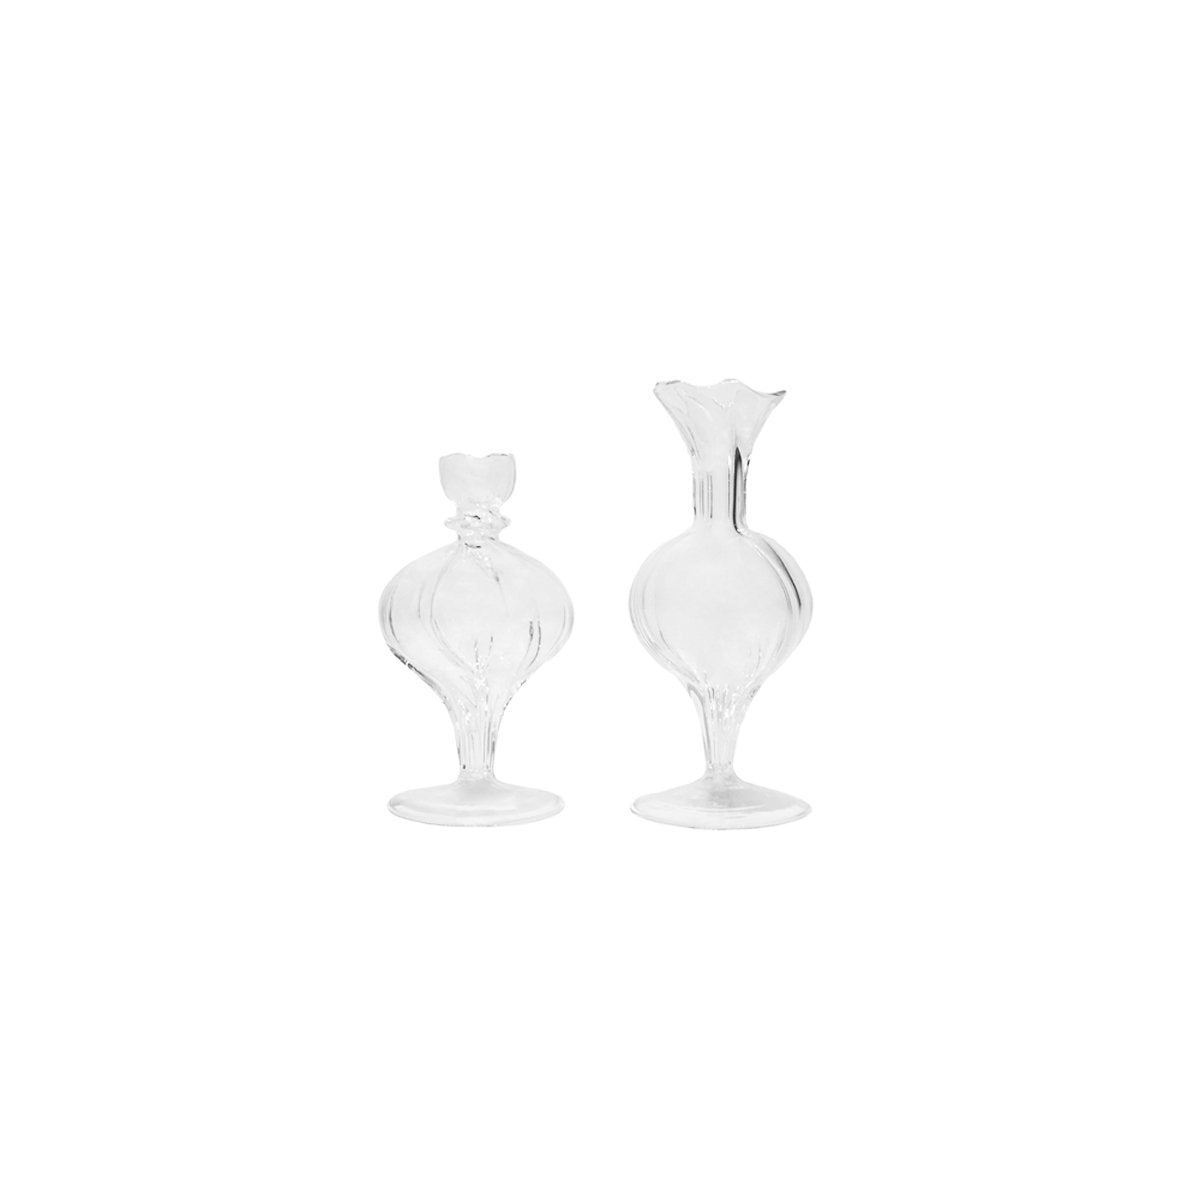 Medium Spherical Vase, Clear, Set of 2